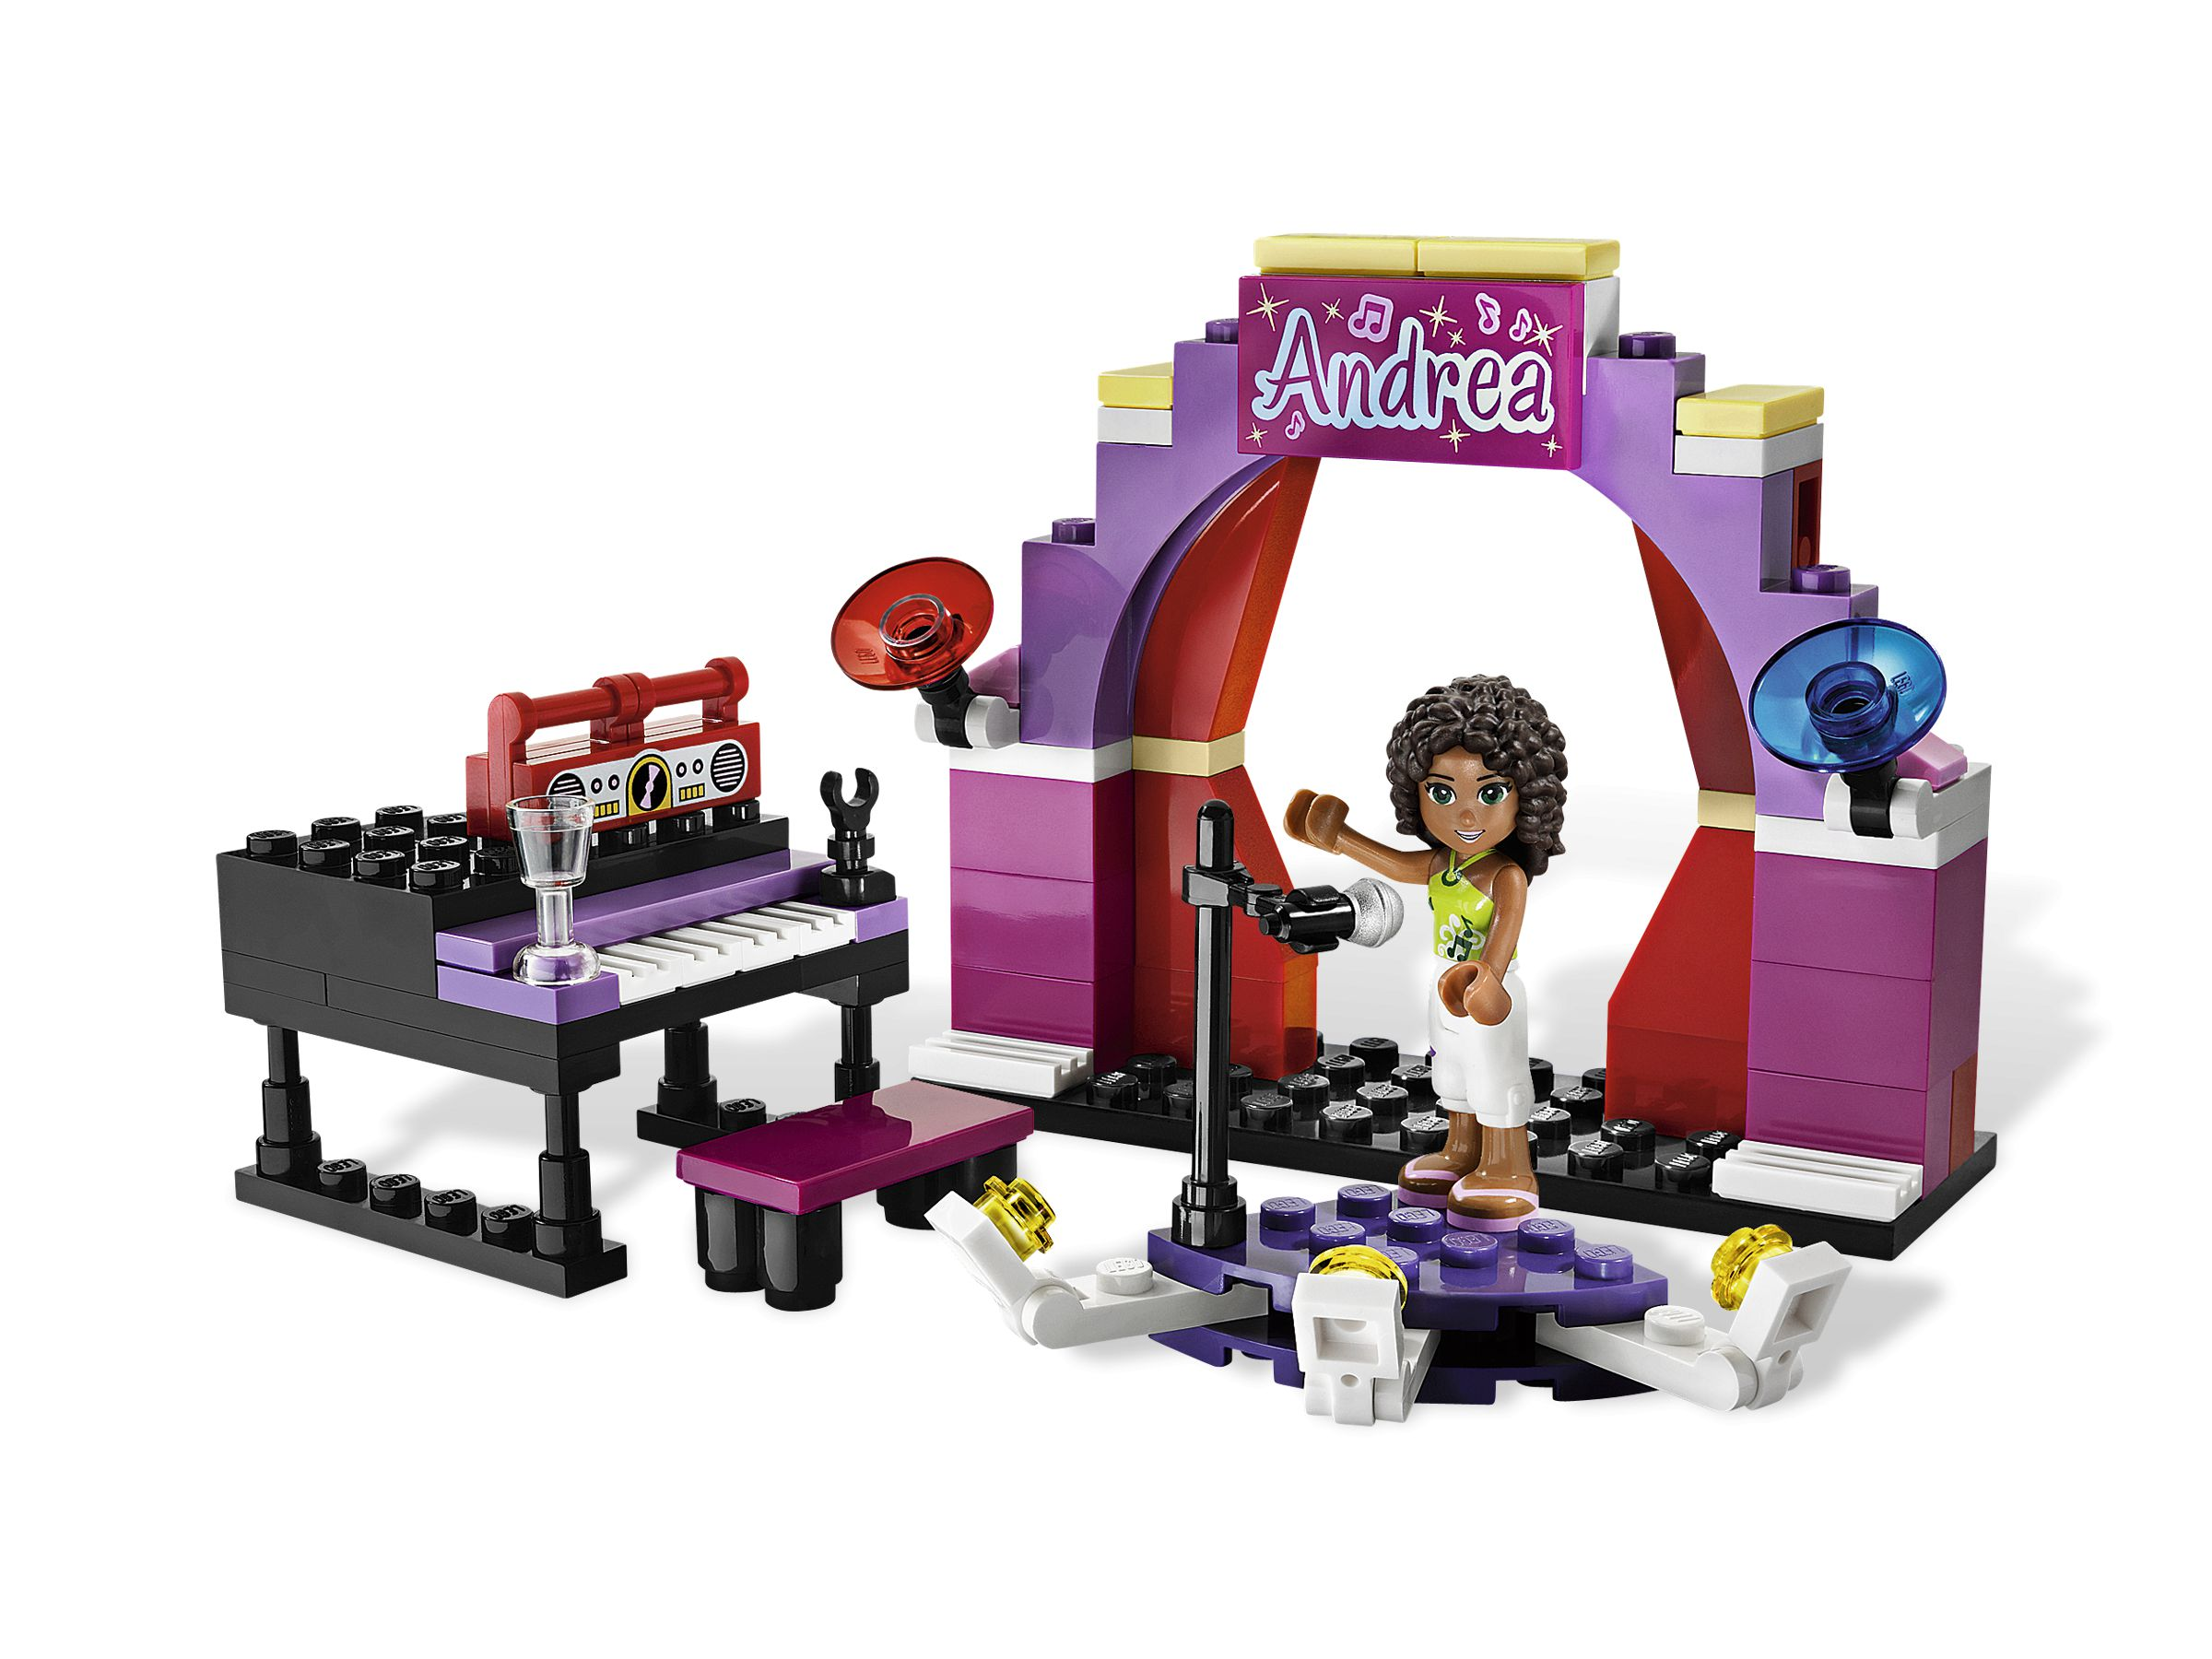 LEGO Friends 3932 Andrea's Stage LEGO_3932.jpg